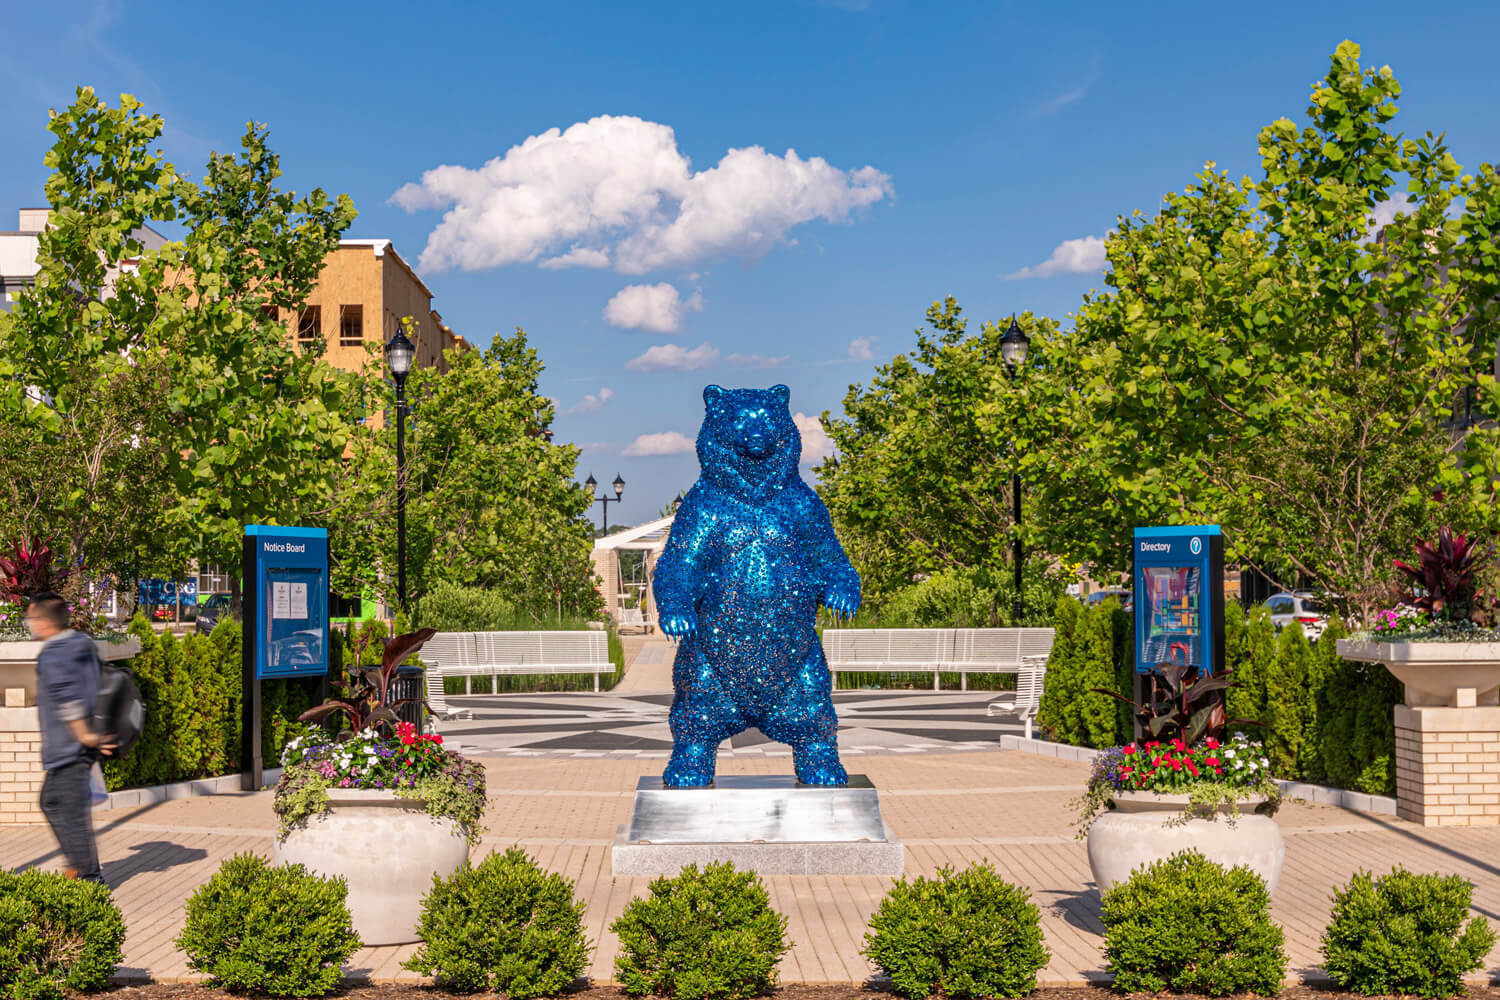 Sir Rulean the bear welcomes you to Riverdale Park!